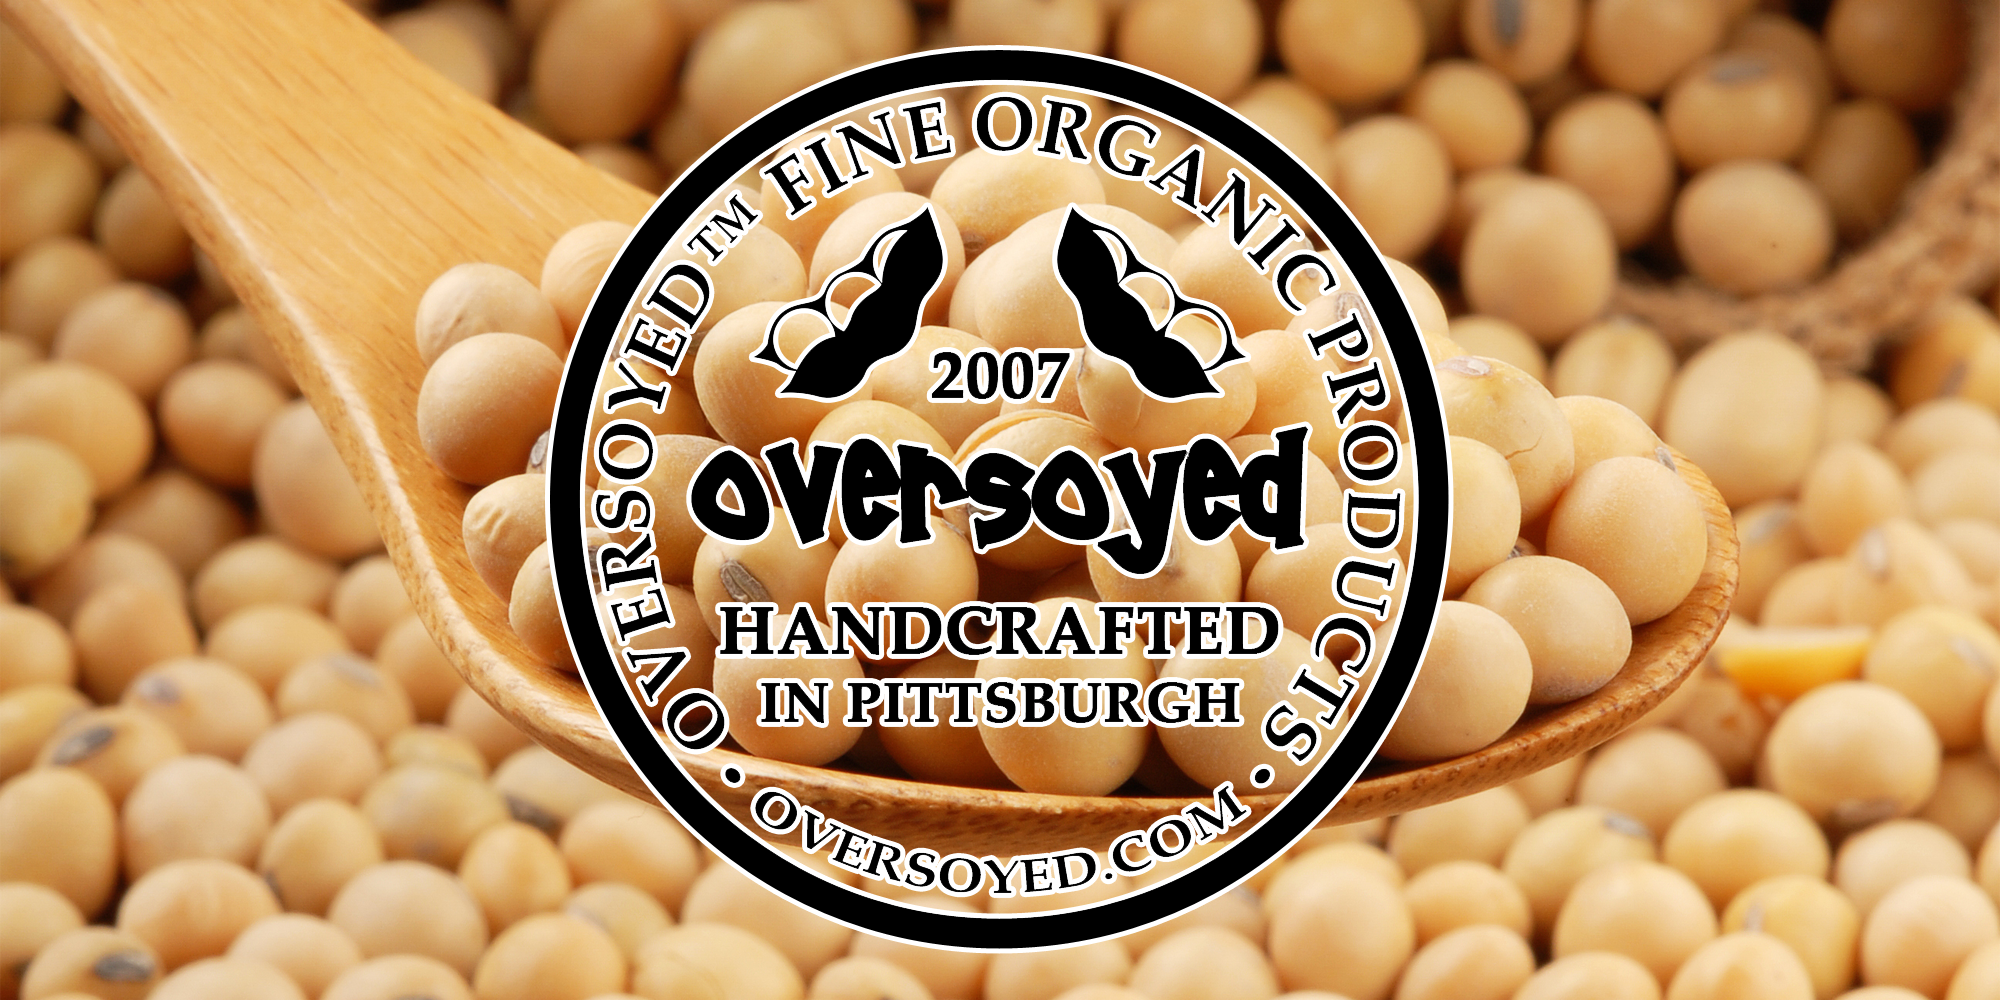 OverSoyed Fine Organic Products - Company History & Vision For The Future